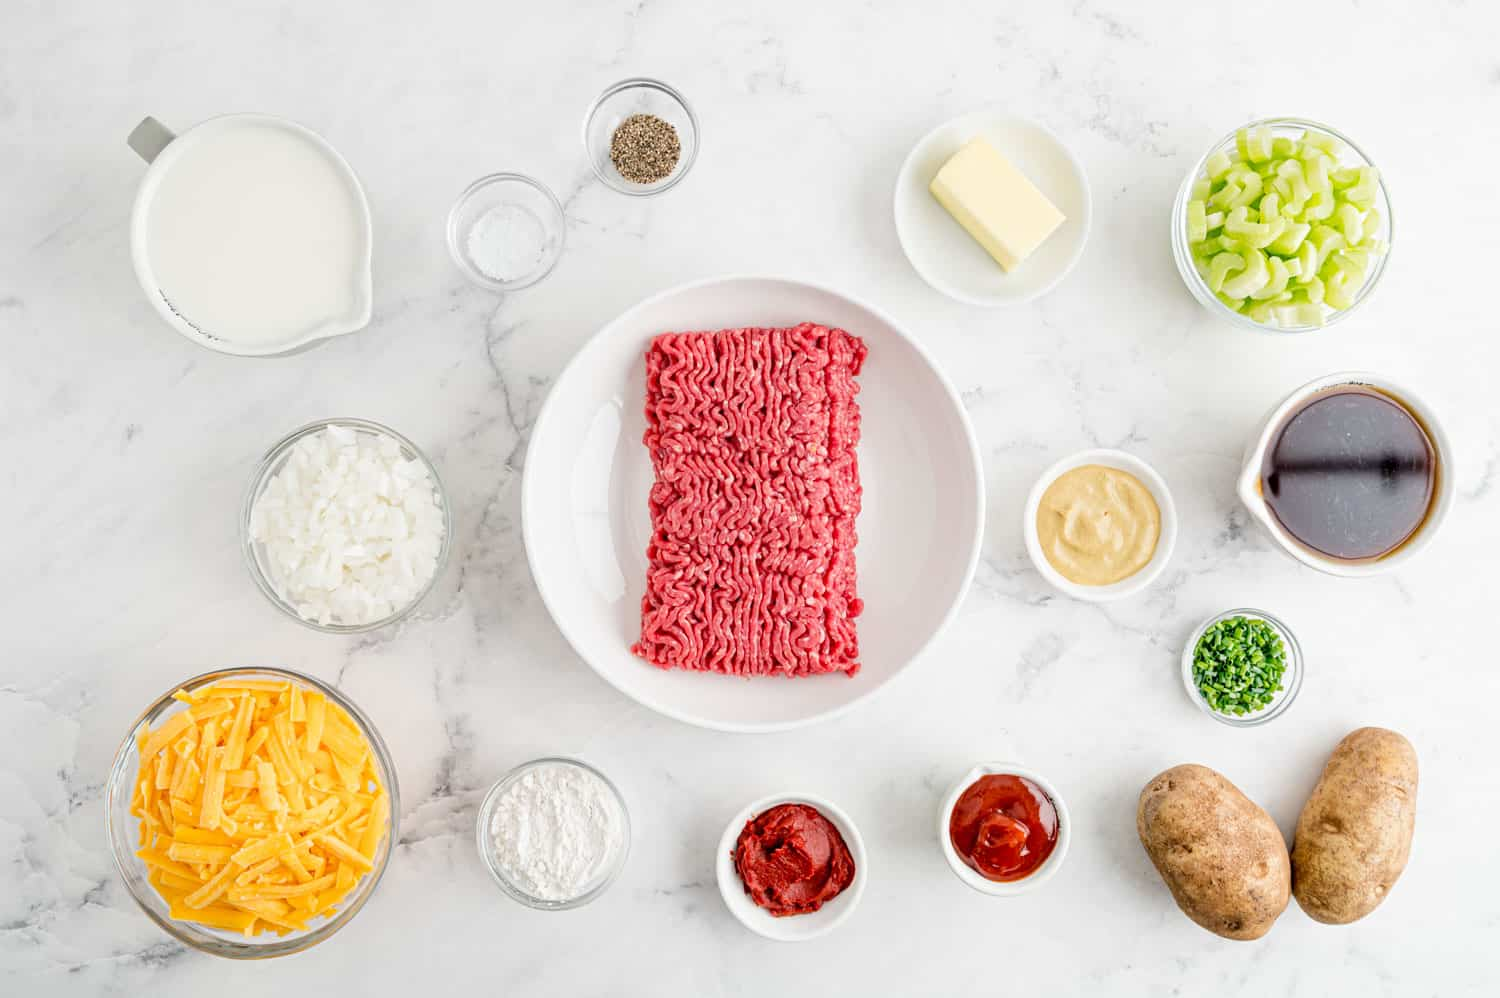 Overhead view of ingredients needed for recipe, all in separate white and clear bowls.